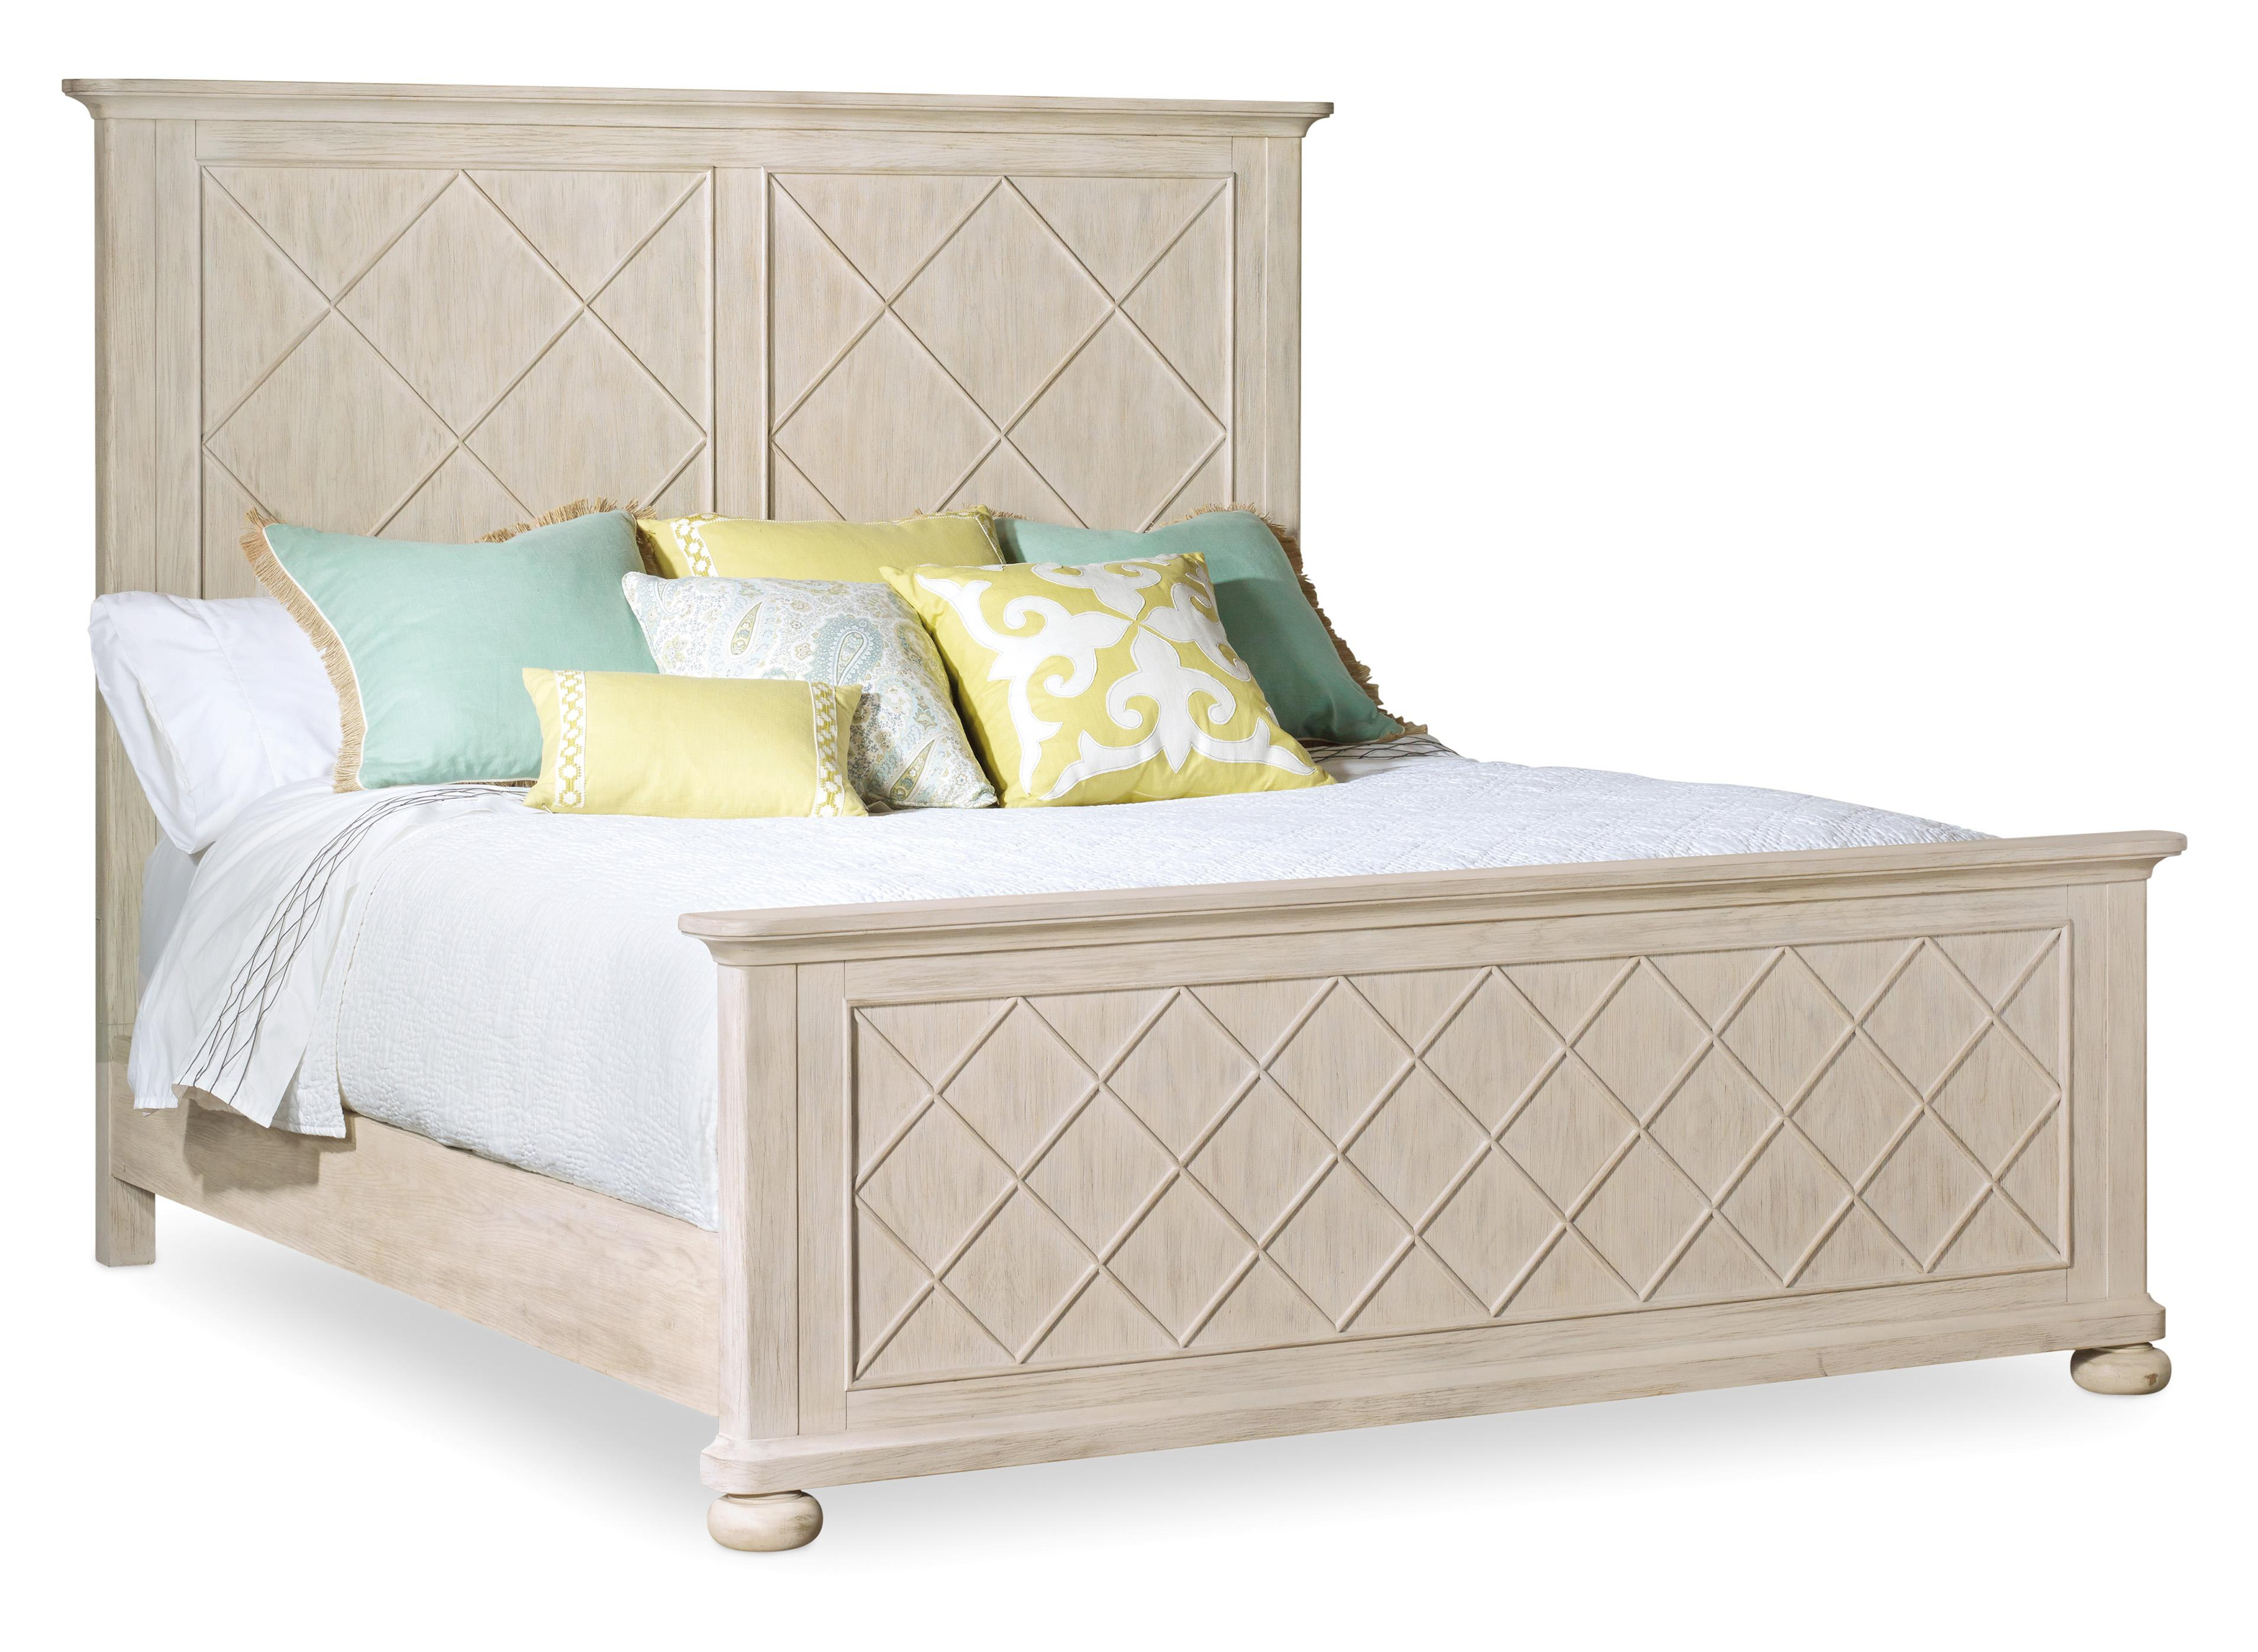 Hooker Furniture Sunset Point Queen Fretwork Panel Bed - Item Number: 5325-90250